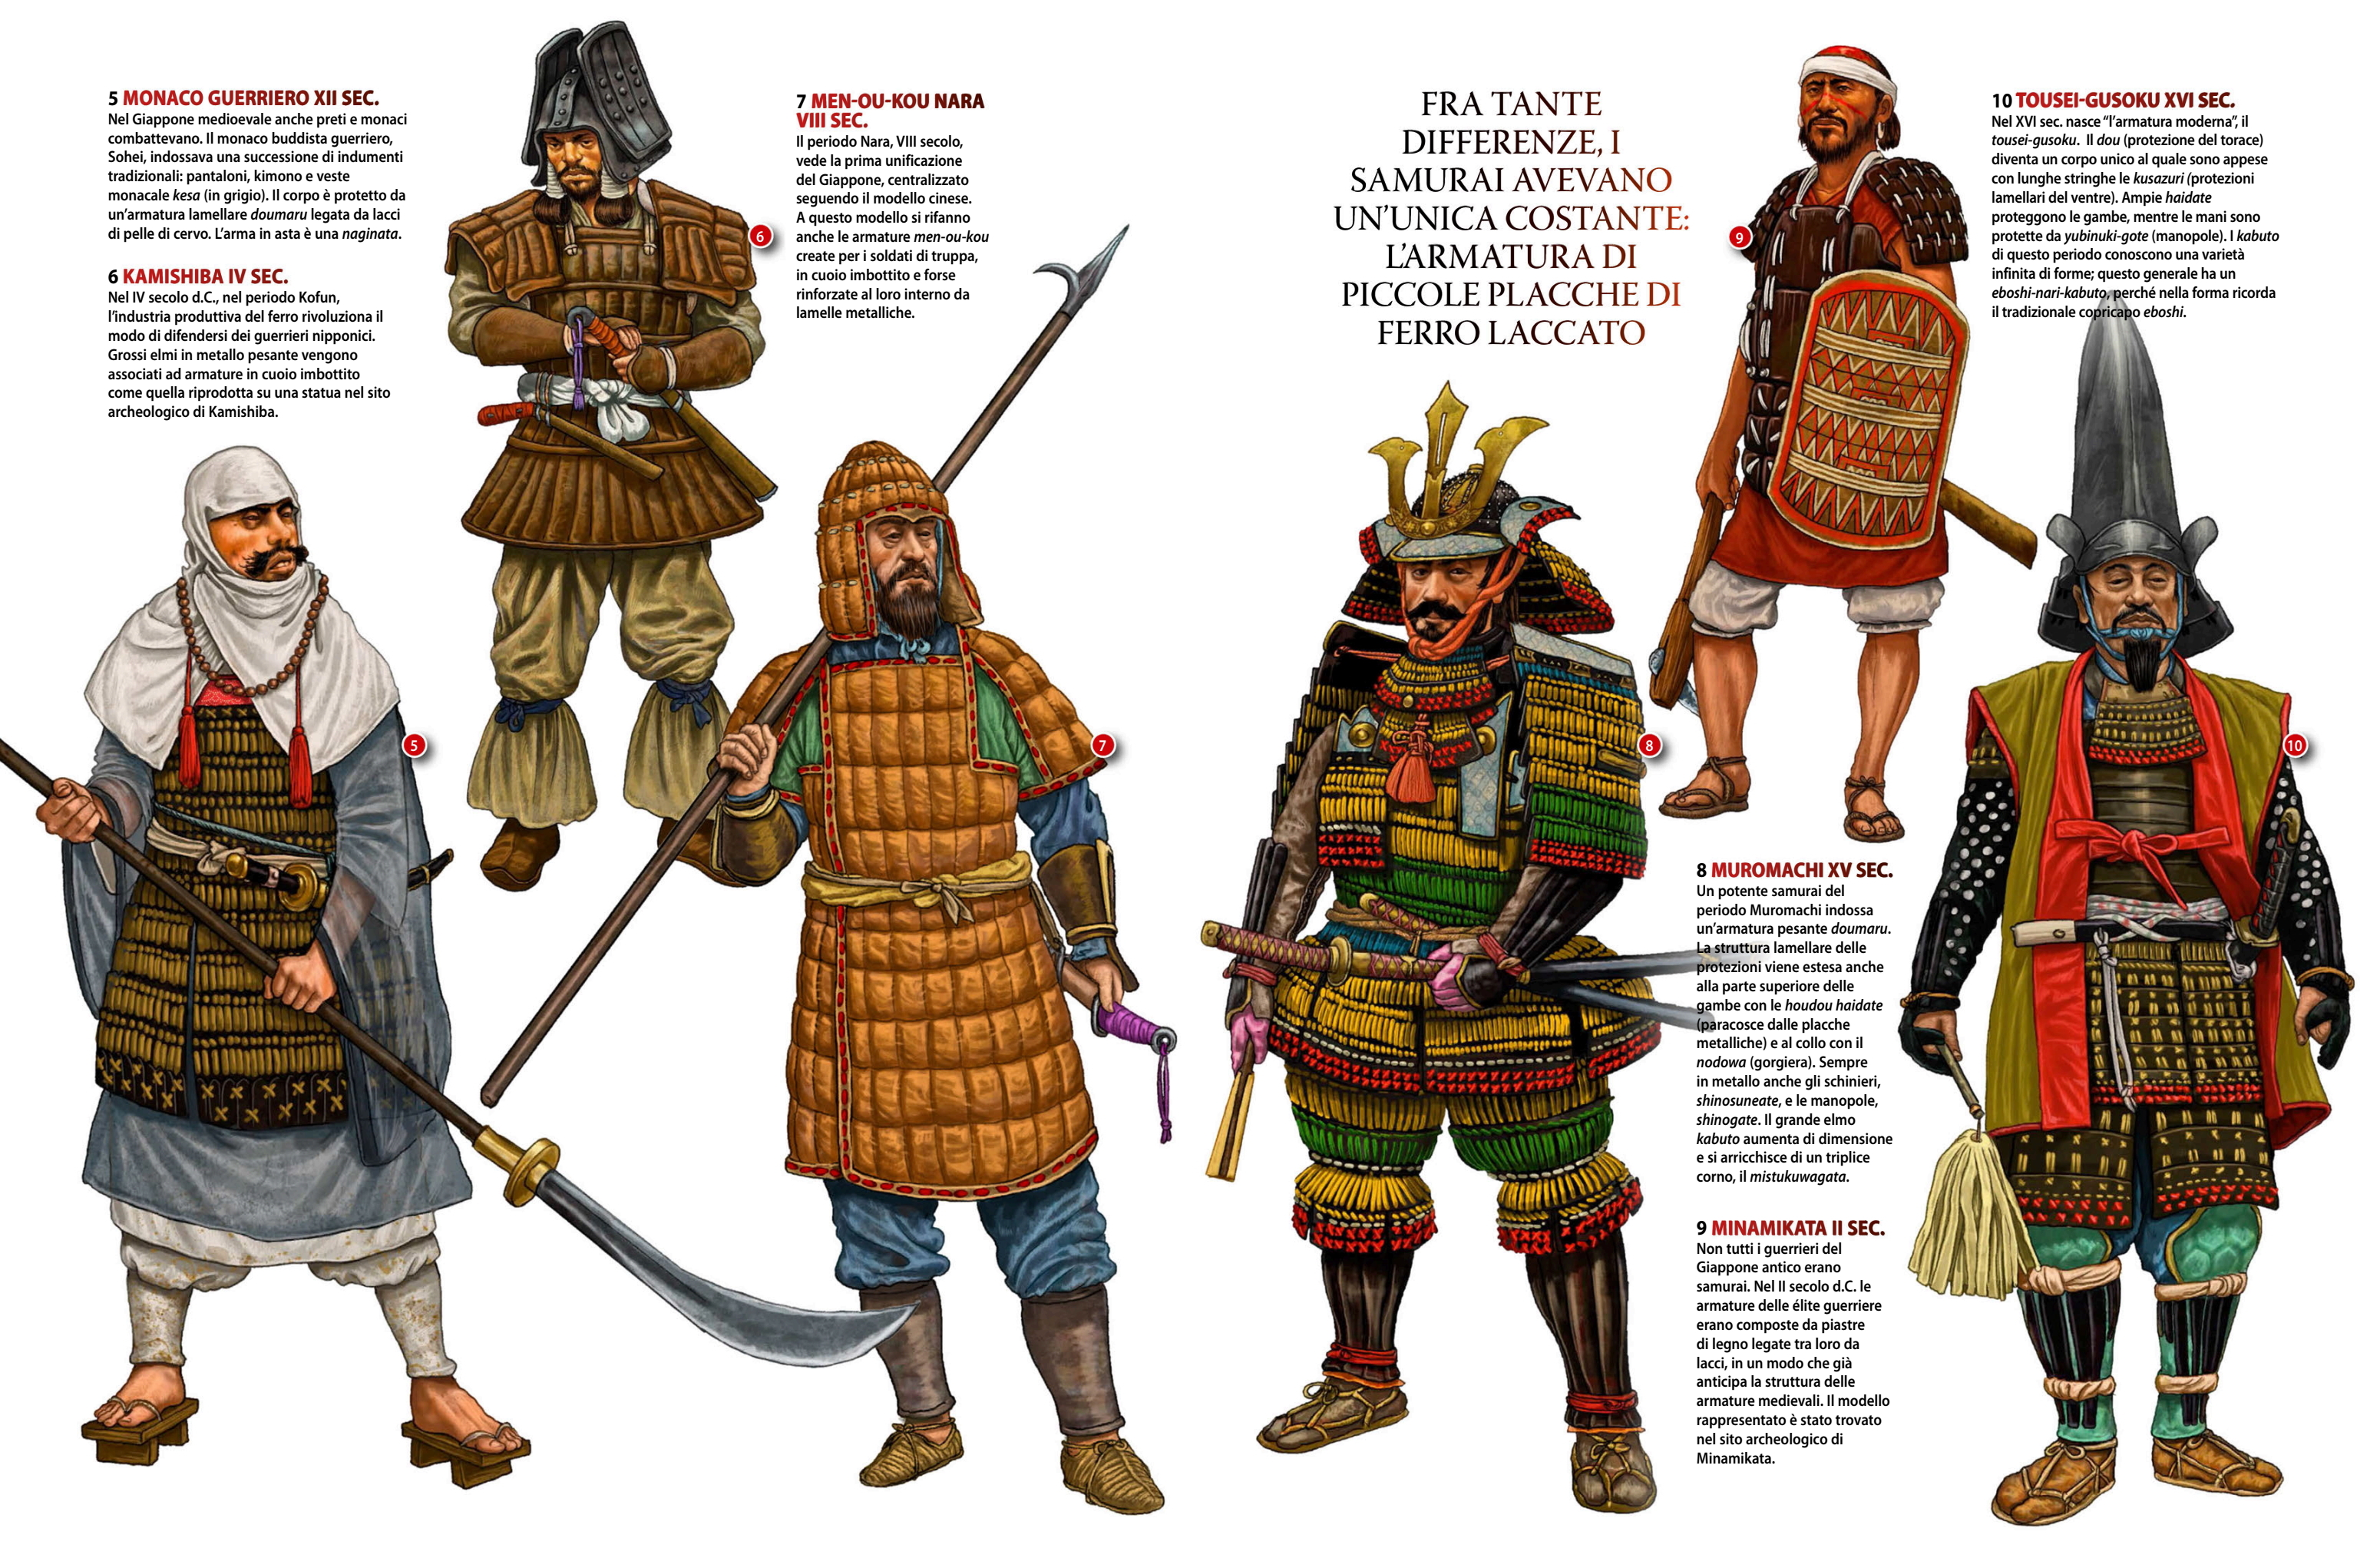 Samurai The Warrior Class Of Feudal Japan Weapons And Warfare